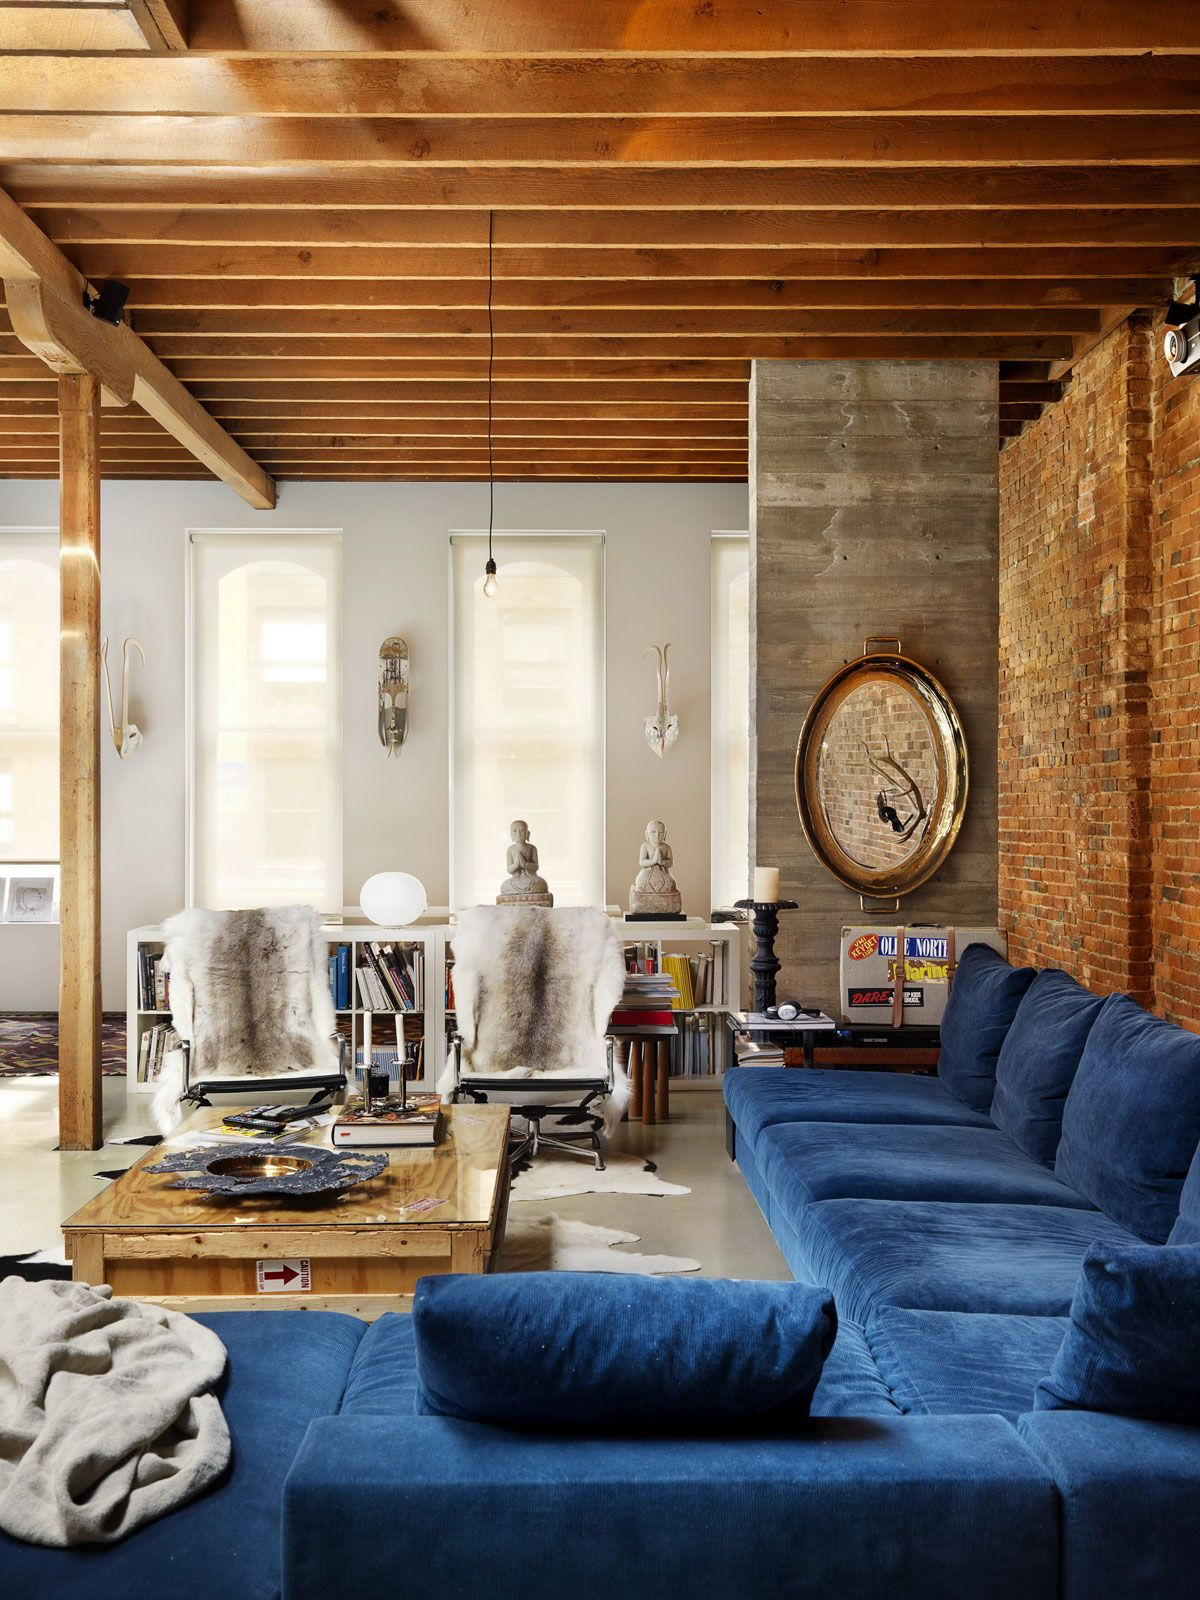 46 water street heritage building by omer arbel 4 house home rh pinterest com